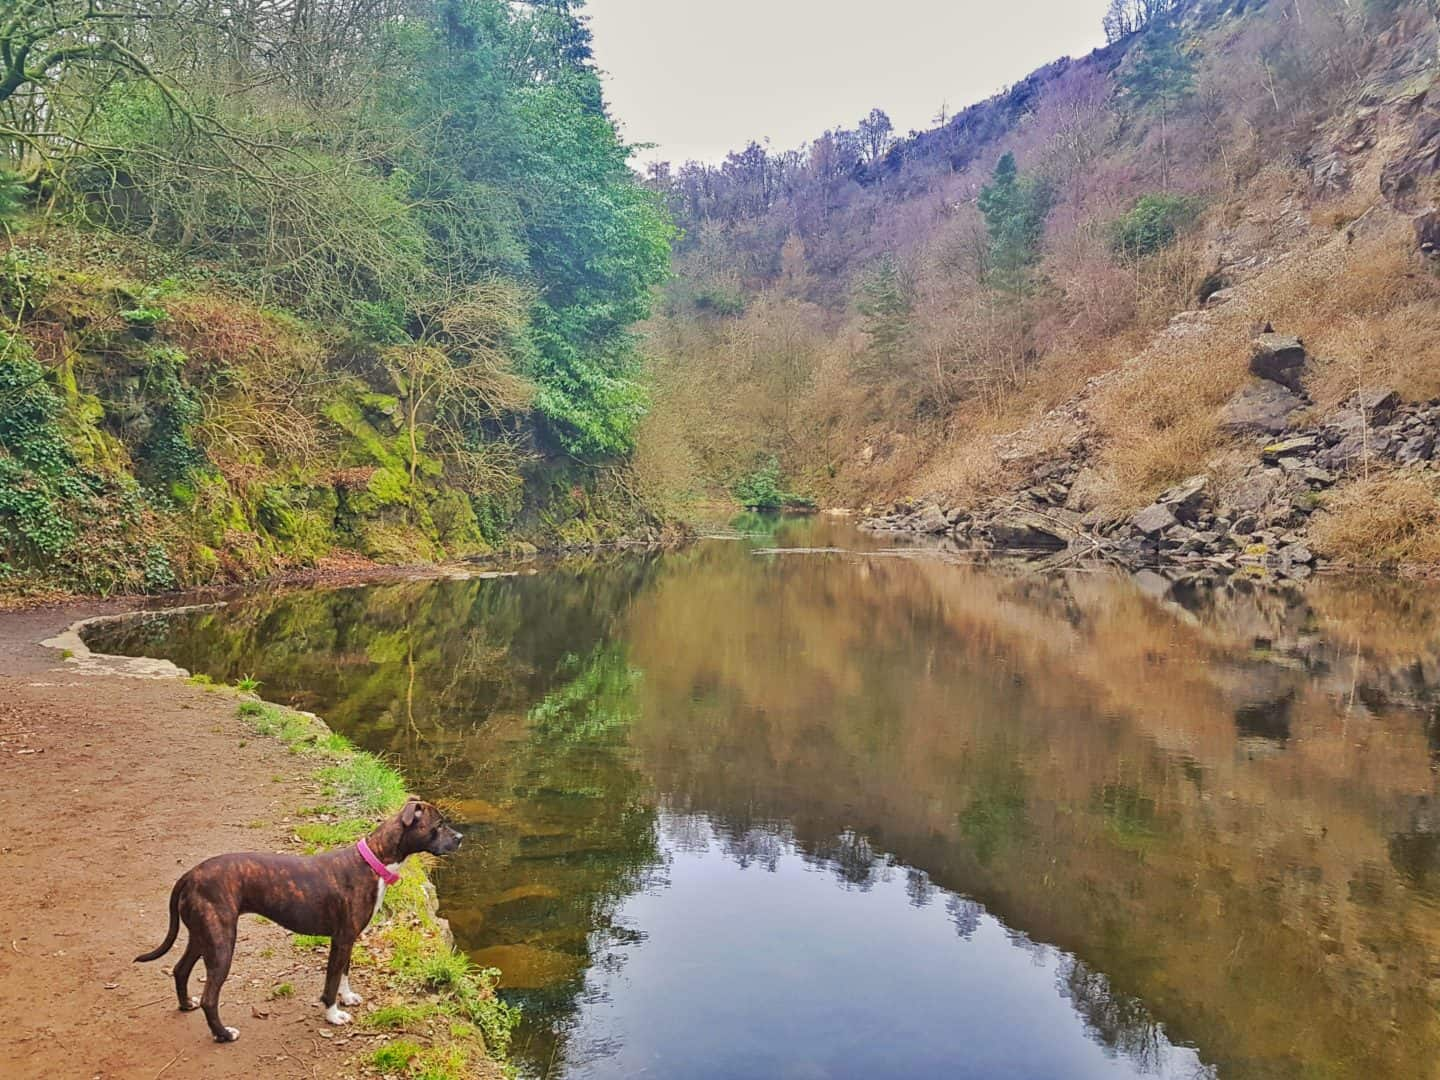 Lake at the bottom of a quarry with steep sides and trees reflected in the water. Dog looking at the water from the left hand side.